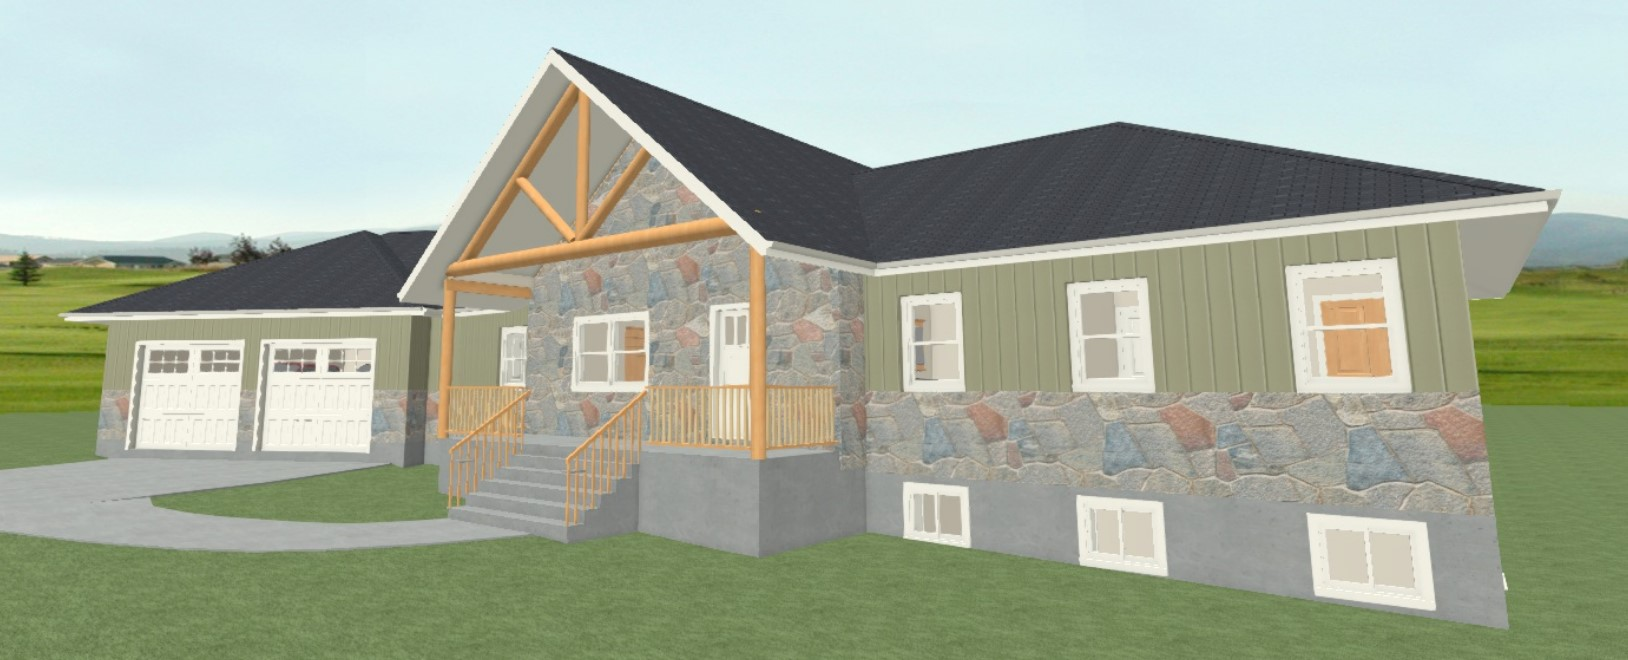 Chemong Bungalow